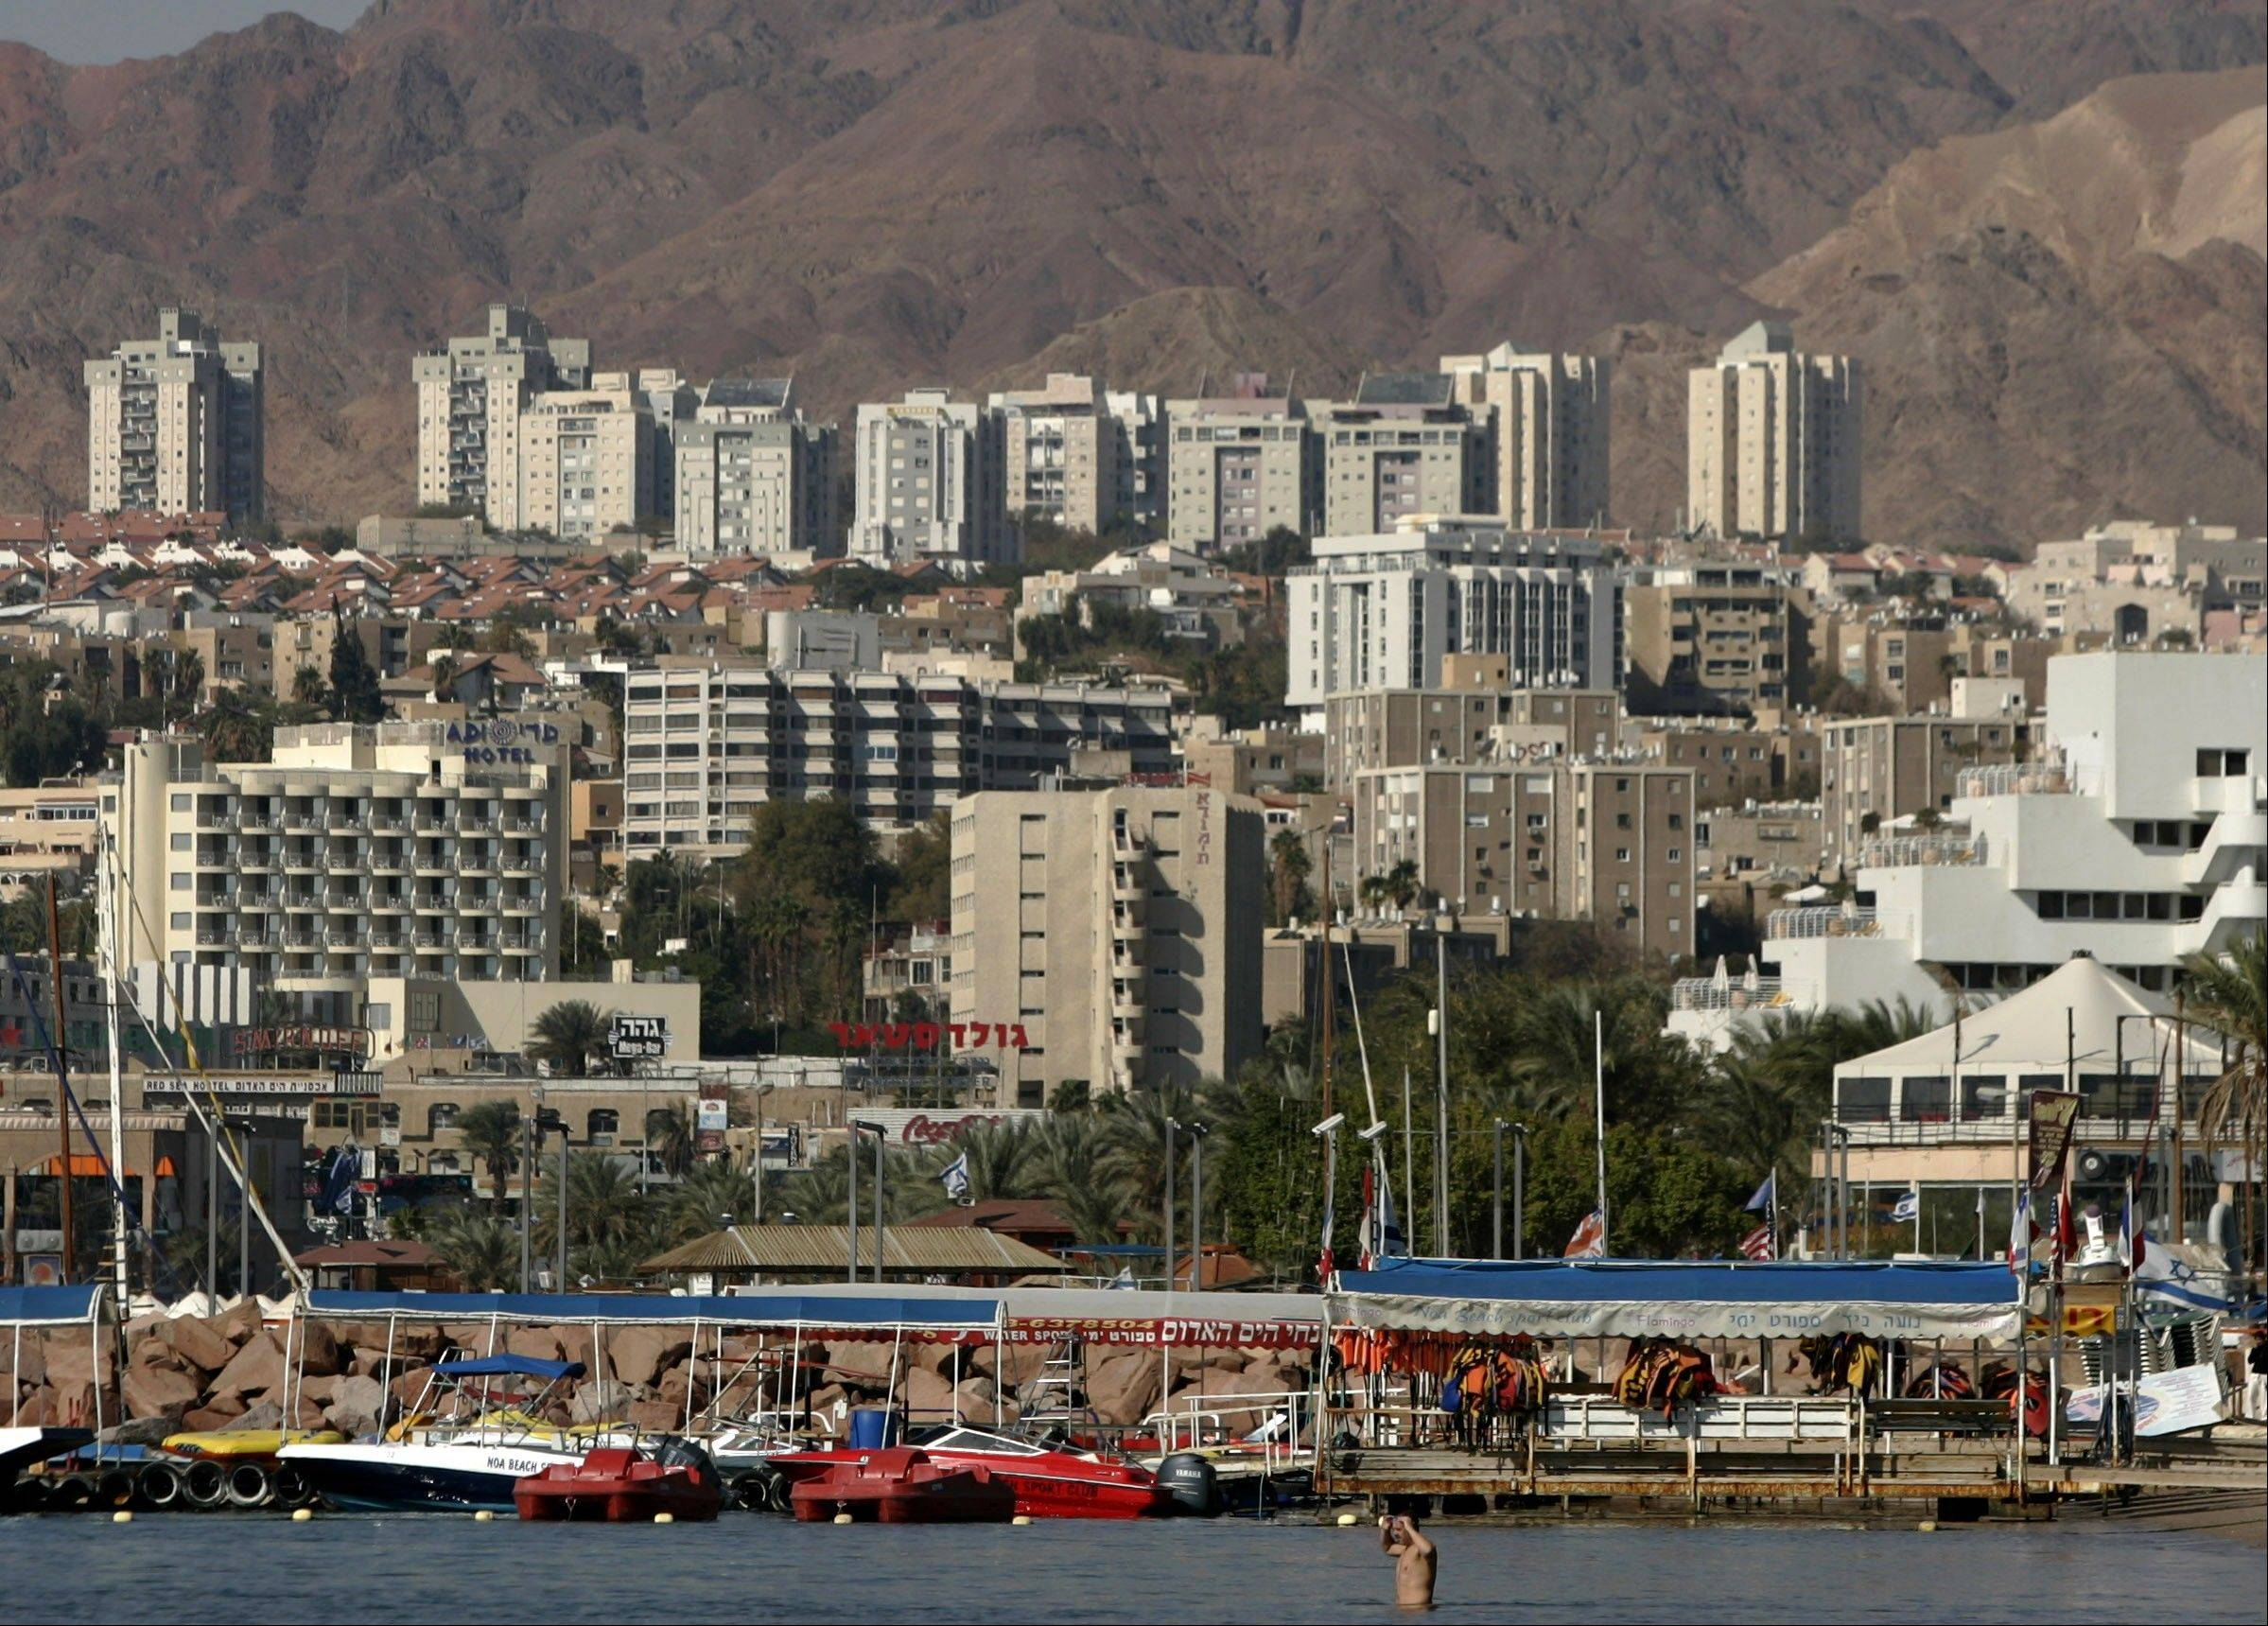 A general view of the Red Sea resort city of Eilat is seen in southern Israel on the border with Egypt. The Israeli military shot down a rocket launched toward Eilat, Tuesday, Aug. 13, 2013, the army said. It was the first time Israel�s Iron Dome missile defense system successfully intercepted a rocket attack on Eilat, according to the military. The incident came after days of heightened tension along the Egypt-Israel border.